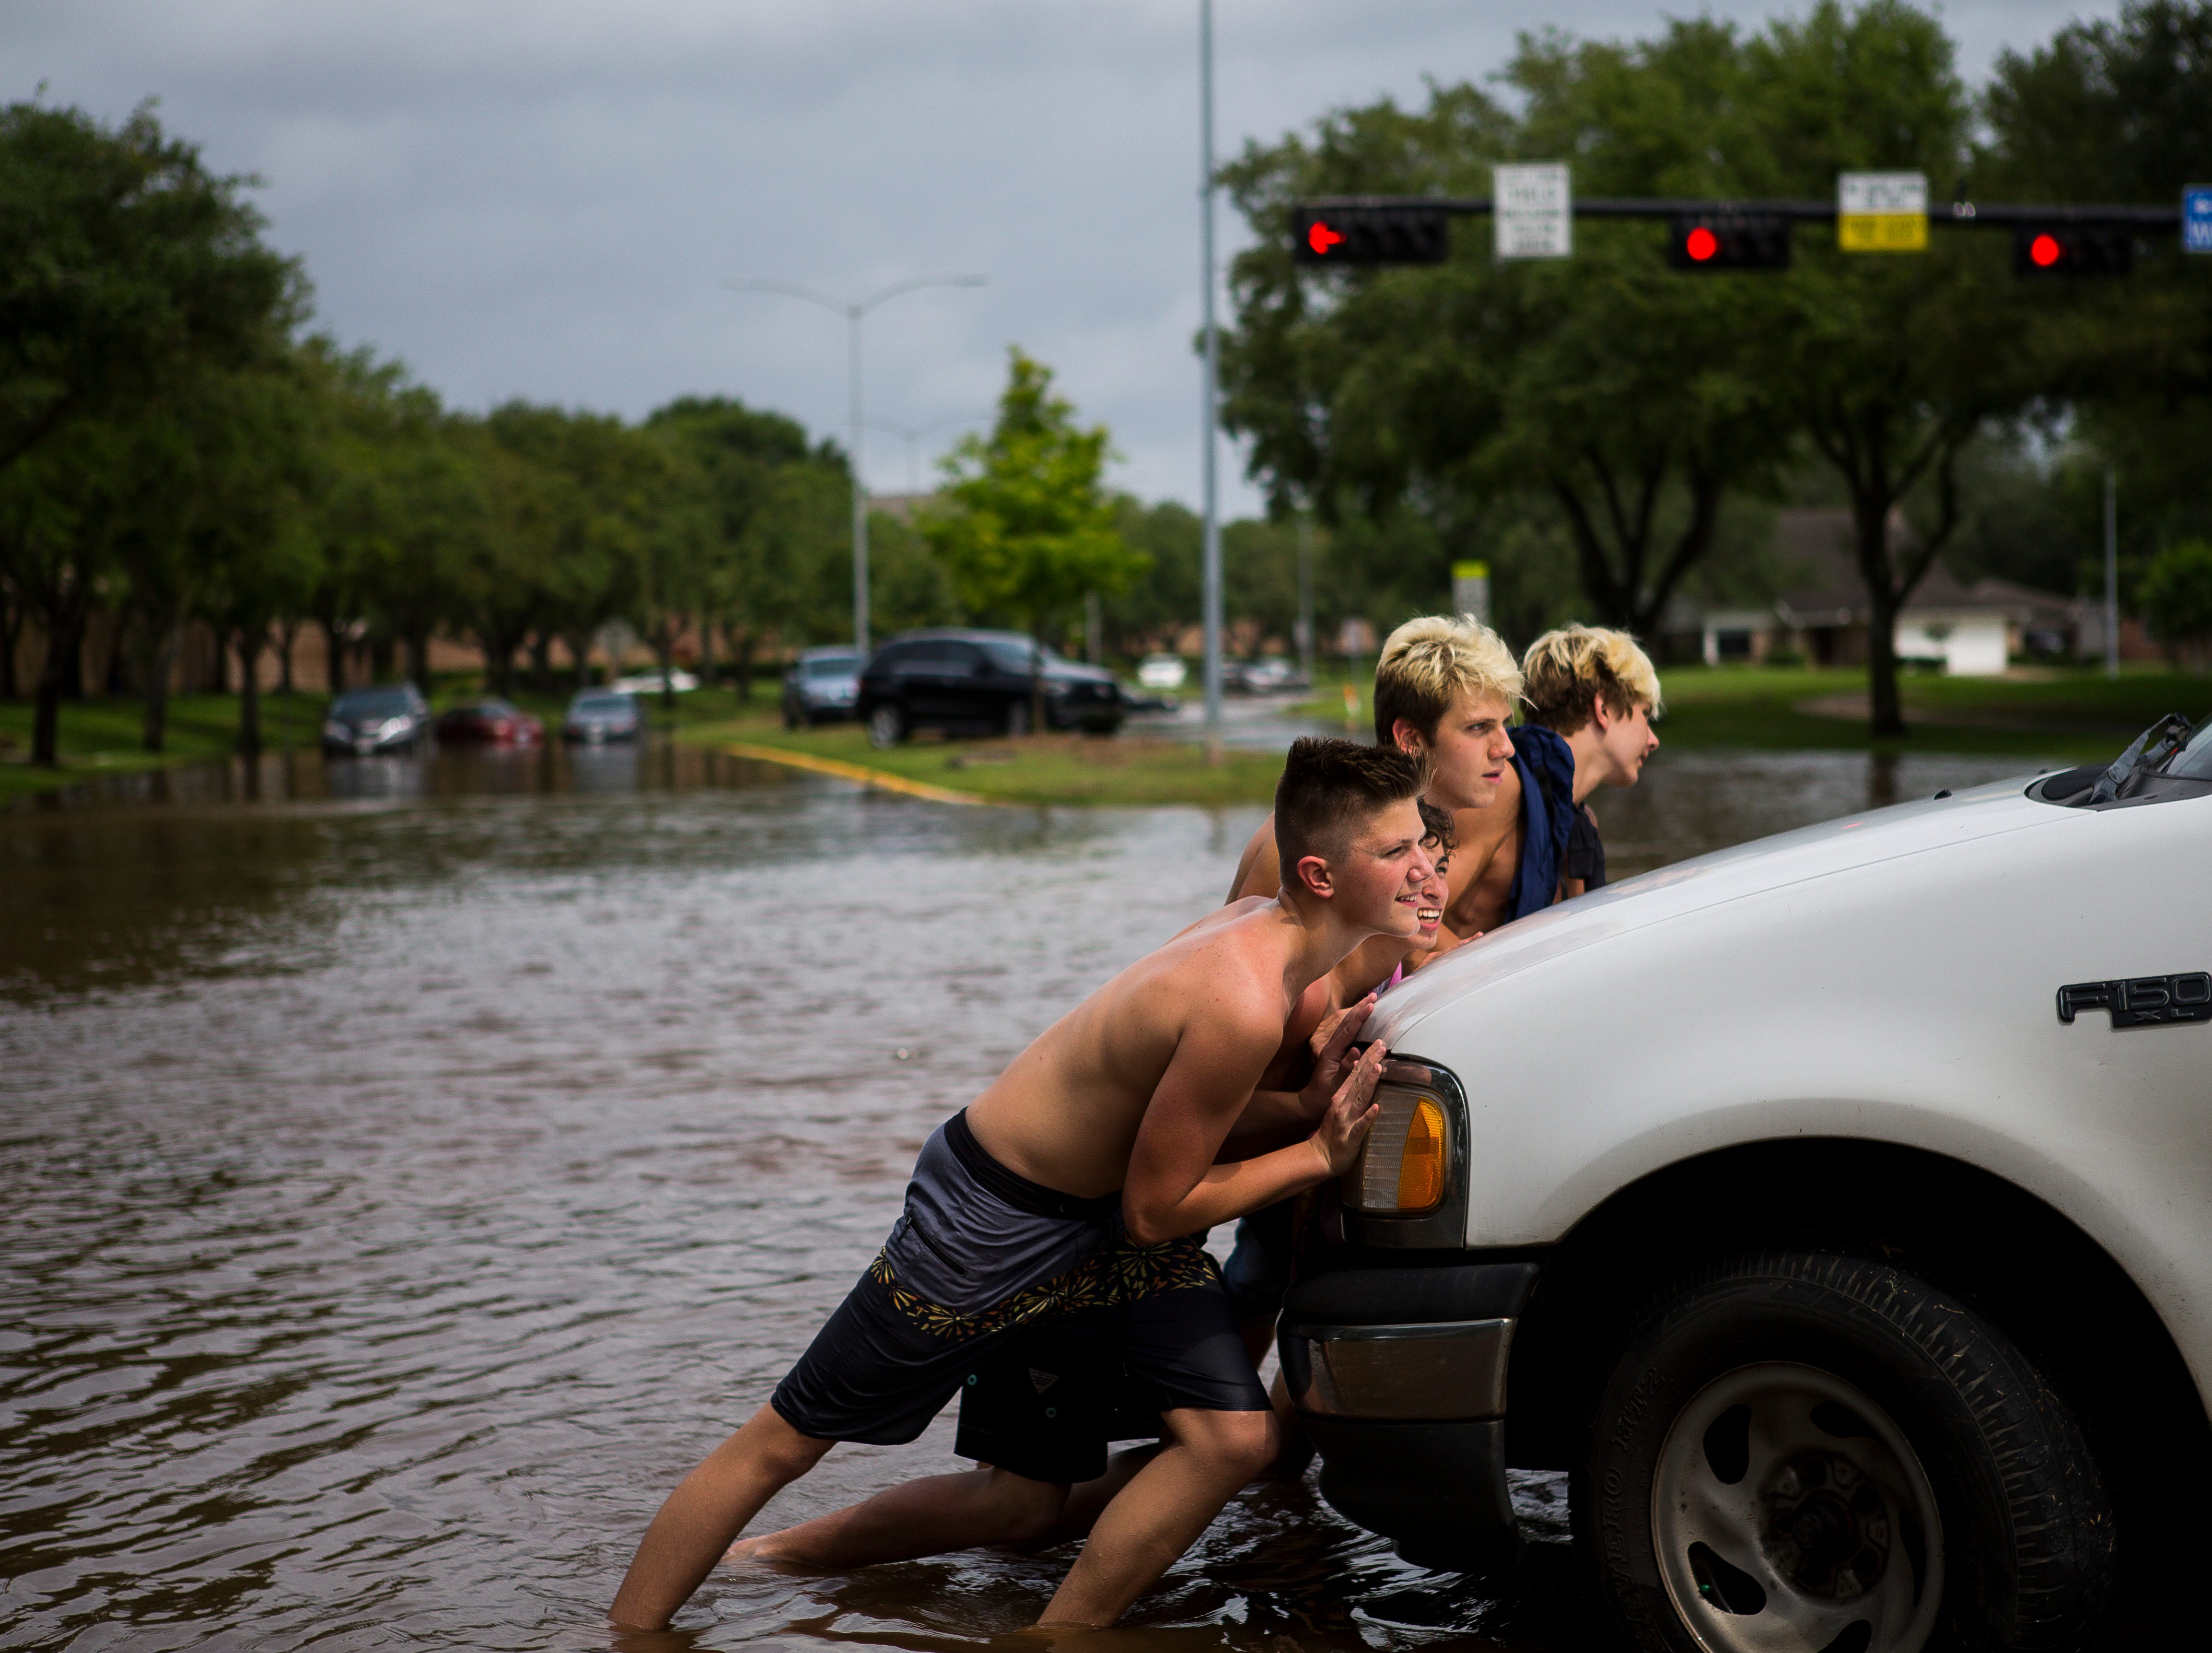 Teenagers help push a stuck truck off the flooded median at Sweetwater Boulevard and Austin Parkway in the Colony Bend neighborhood of Sugar Land, Texas on Wednesday, May 8, 2019. More rain is forecast for the coming days.